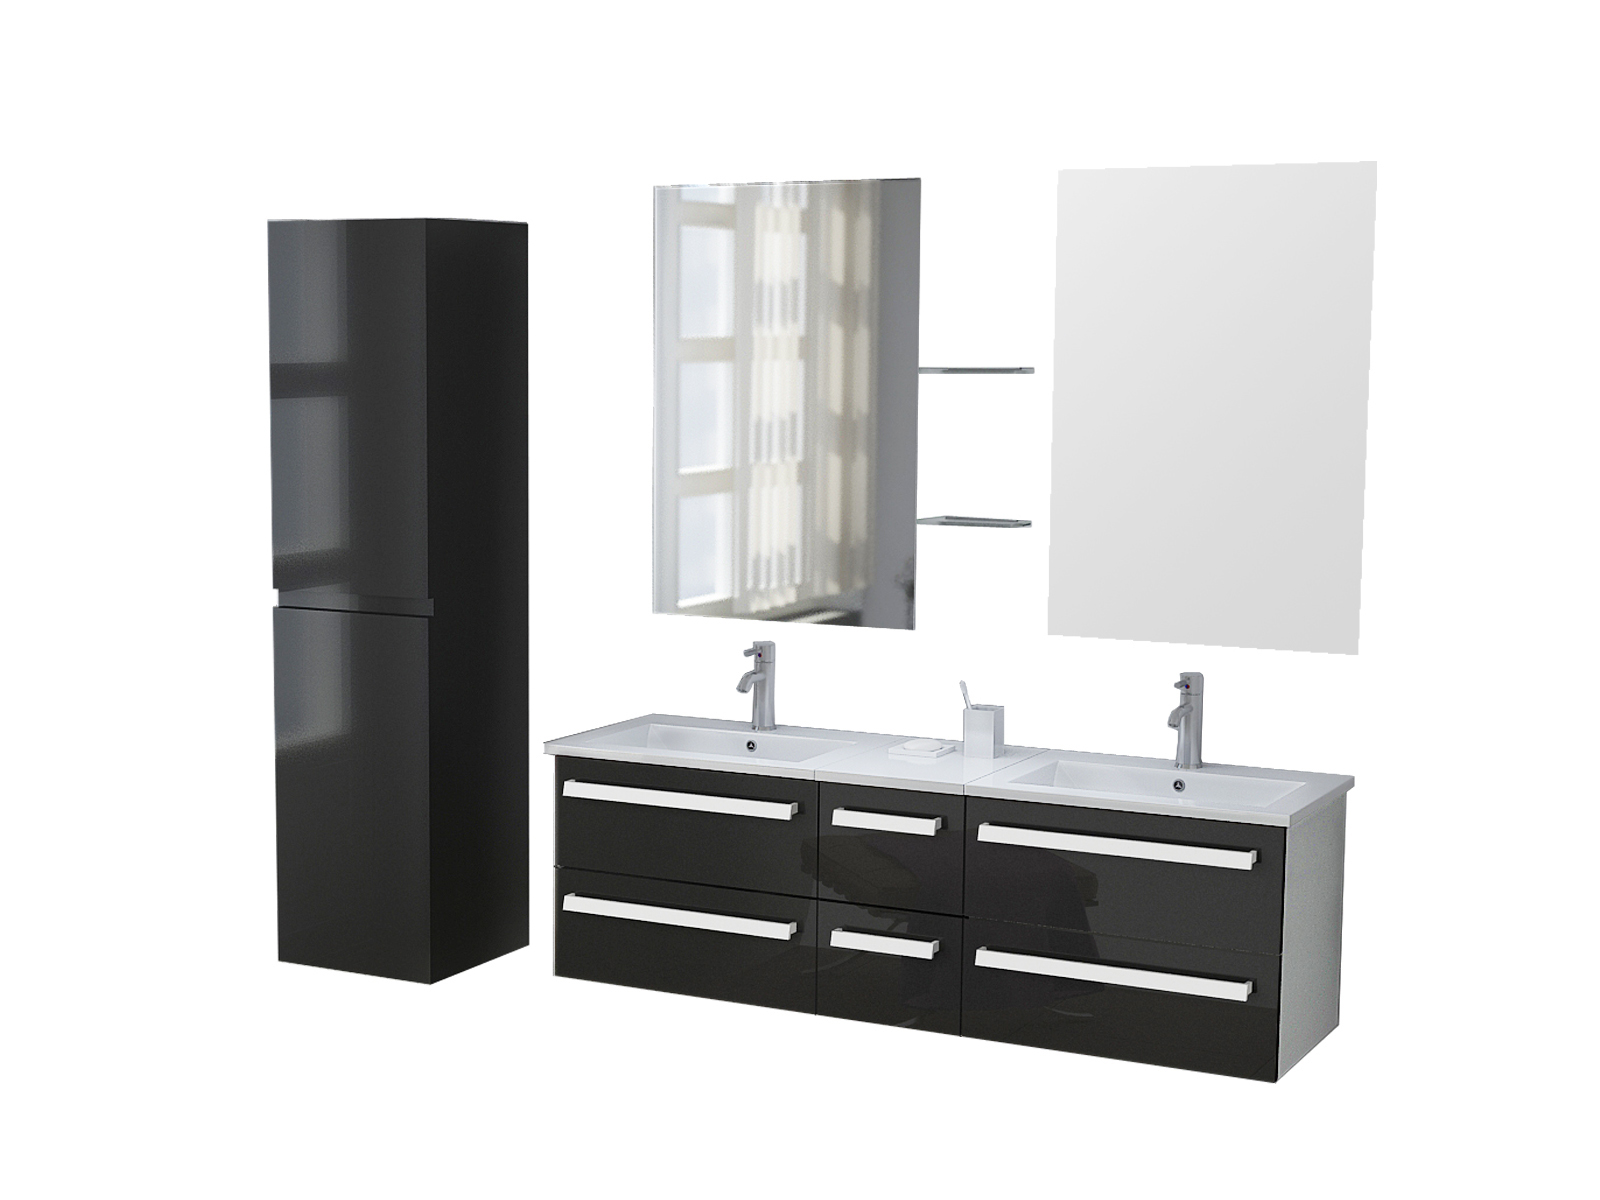 badm bel waschtisch waschbecken set z rich black ebay. Black Bedroom Furniture Sets. Home Design Ideas